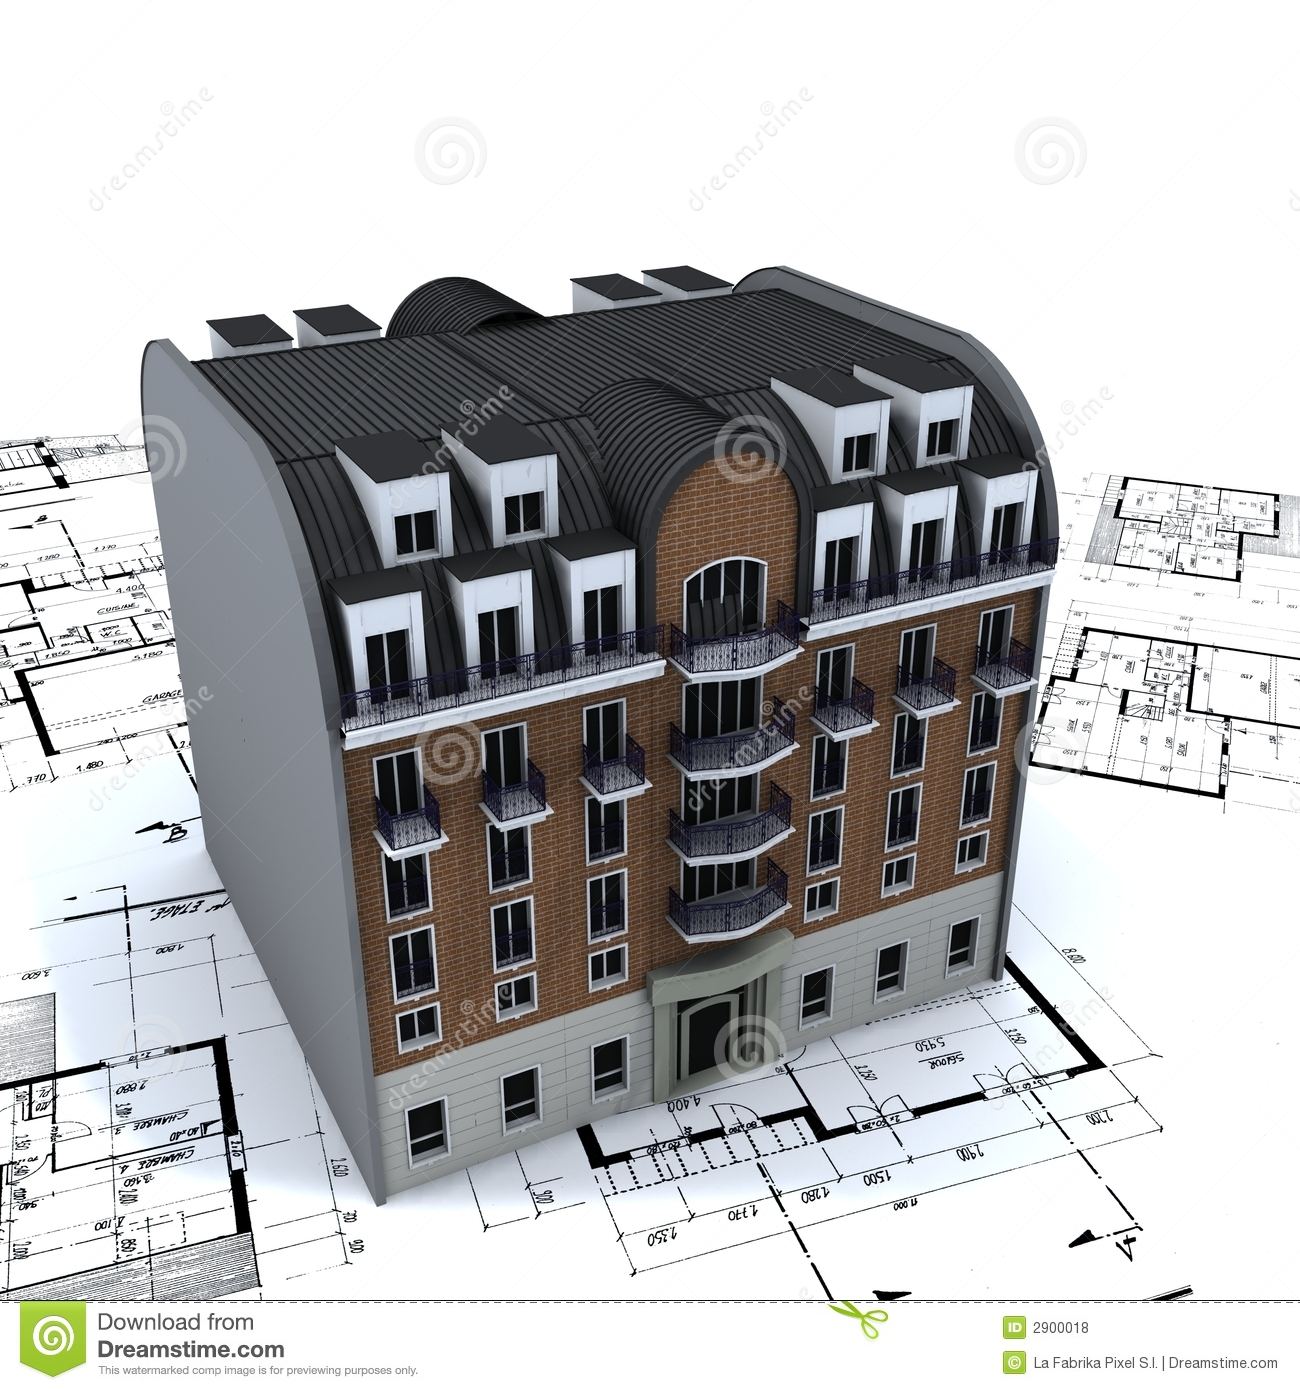 Residential building on plans royalty free stock photos for Residential building design plans